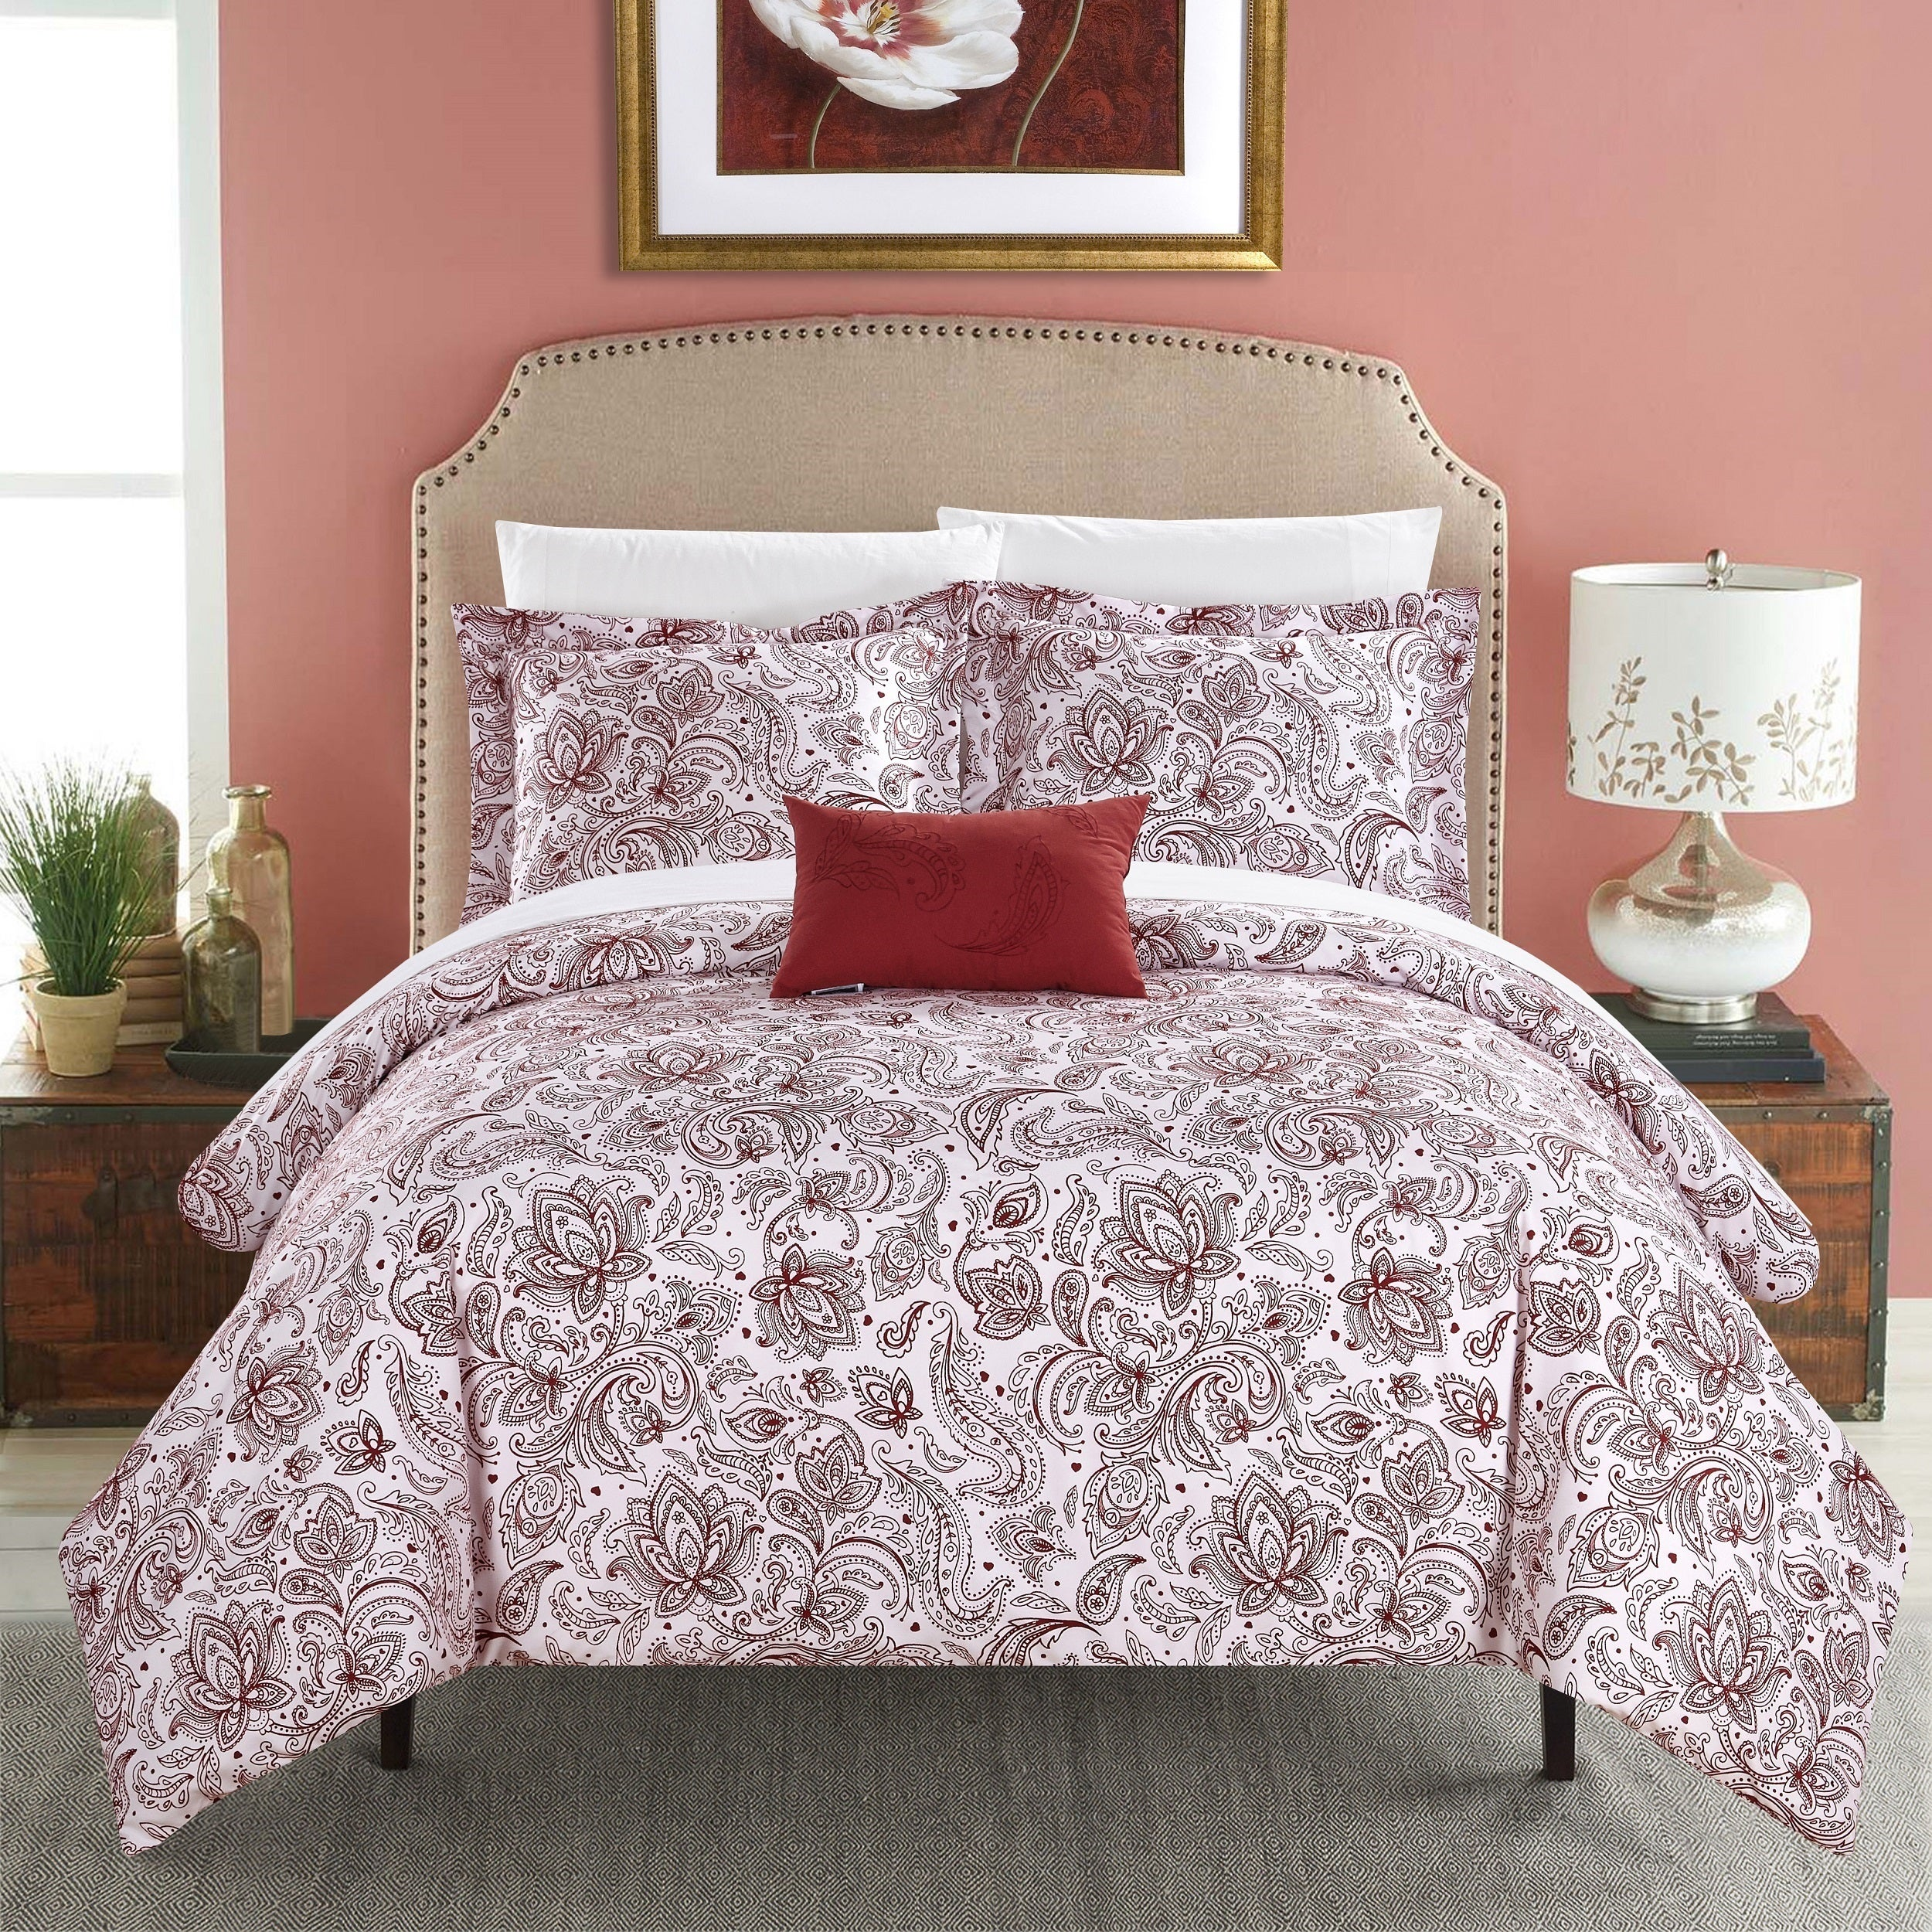 of red copy rags duvet bedding raven skull screenshot products sets rose purple moon and ink